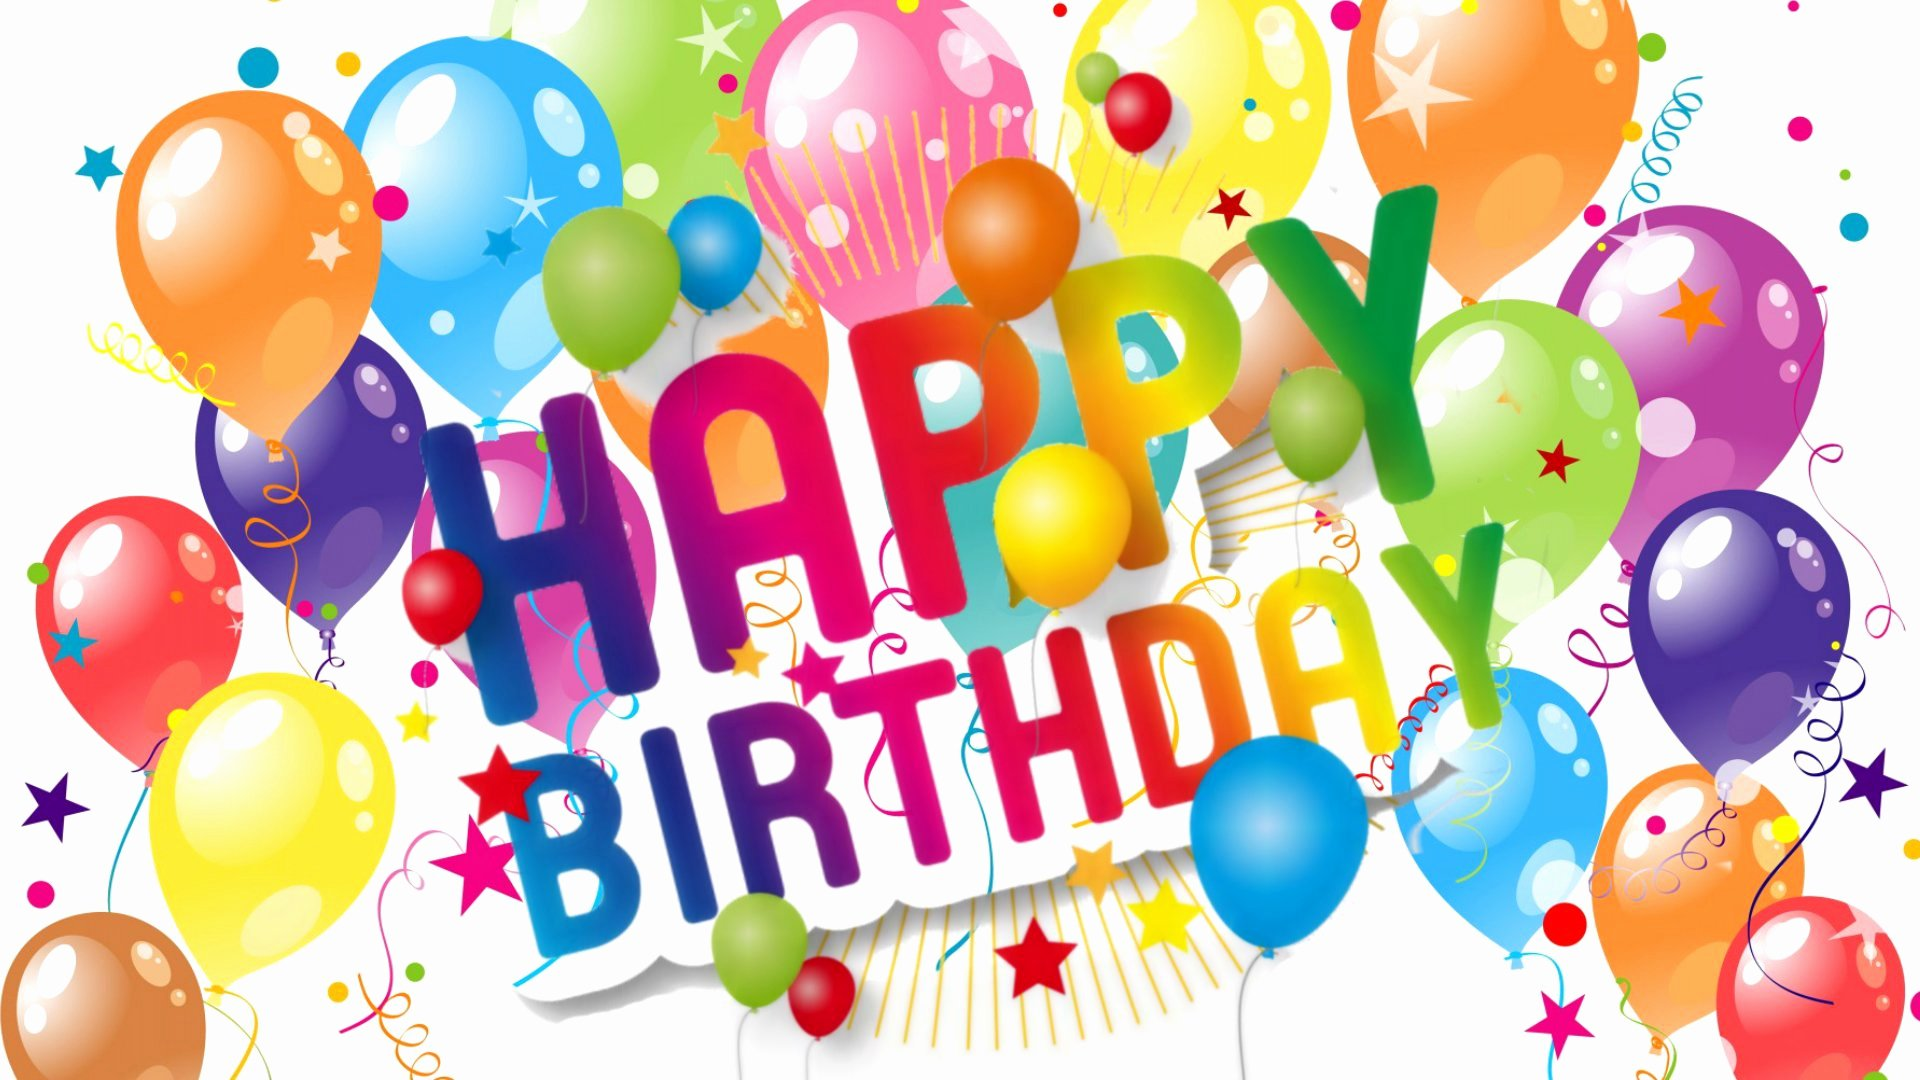 Happy Birthday Pictures Free Elegant Birthday Wallpaper Download